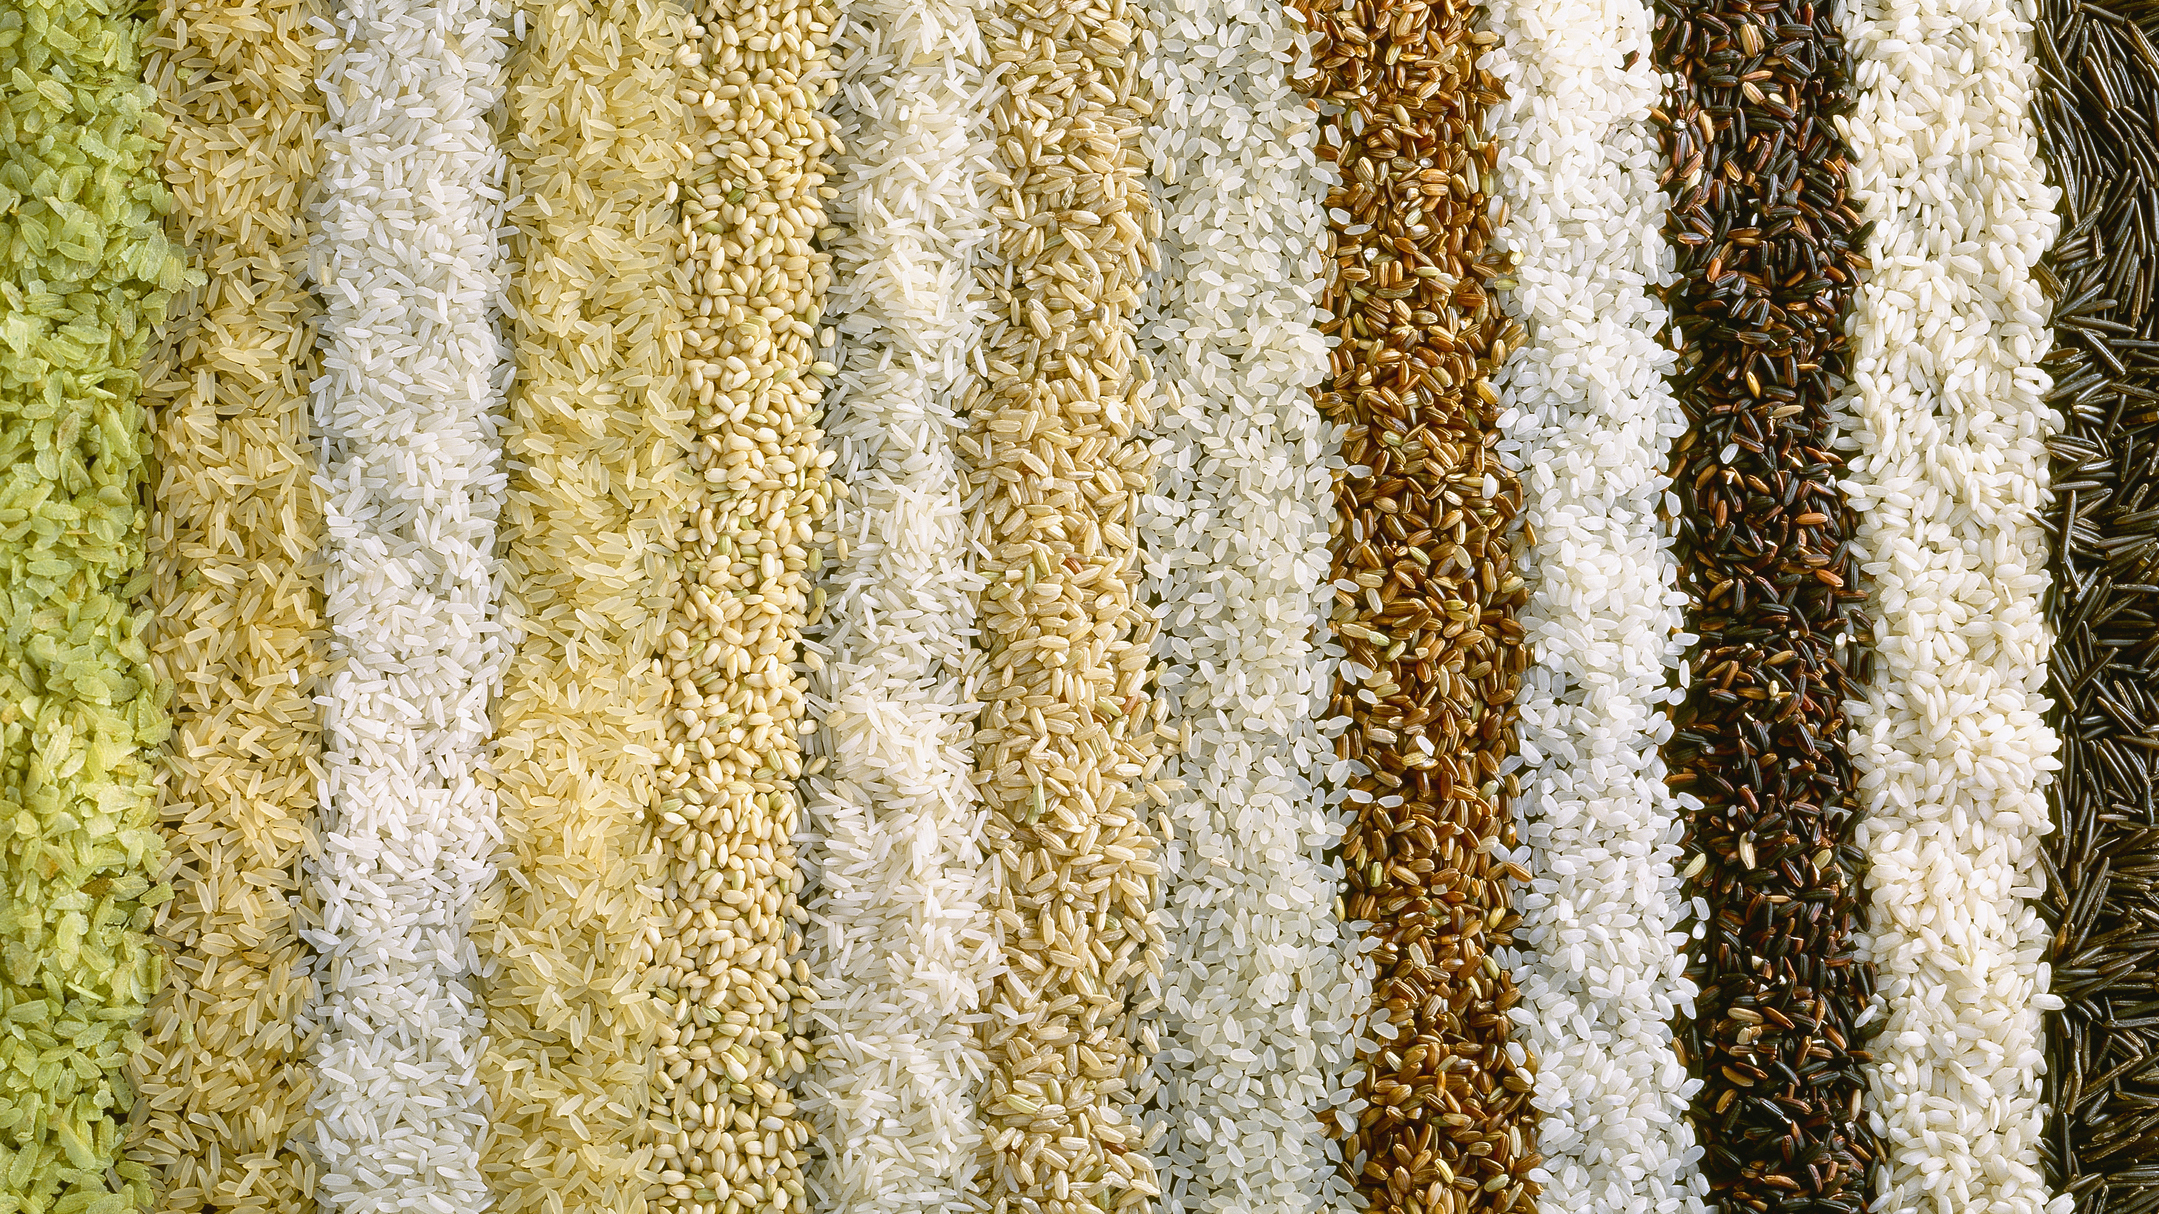 Scientists find that rice grown under elevated carbonconditions loses substantial amounts of protein, zinc, iron and B vitamins, depending on the variety. (Maximilian Stock, Ltd./Getty Images/Passage)